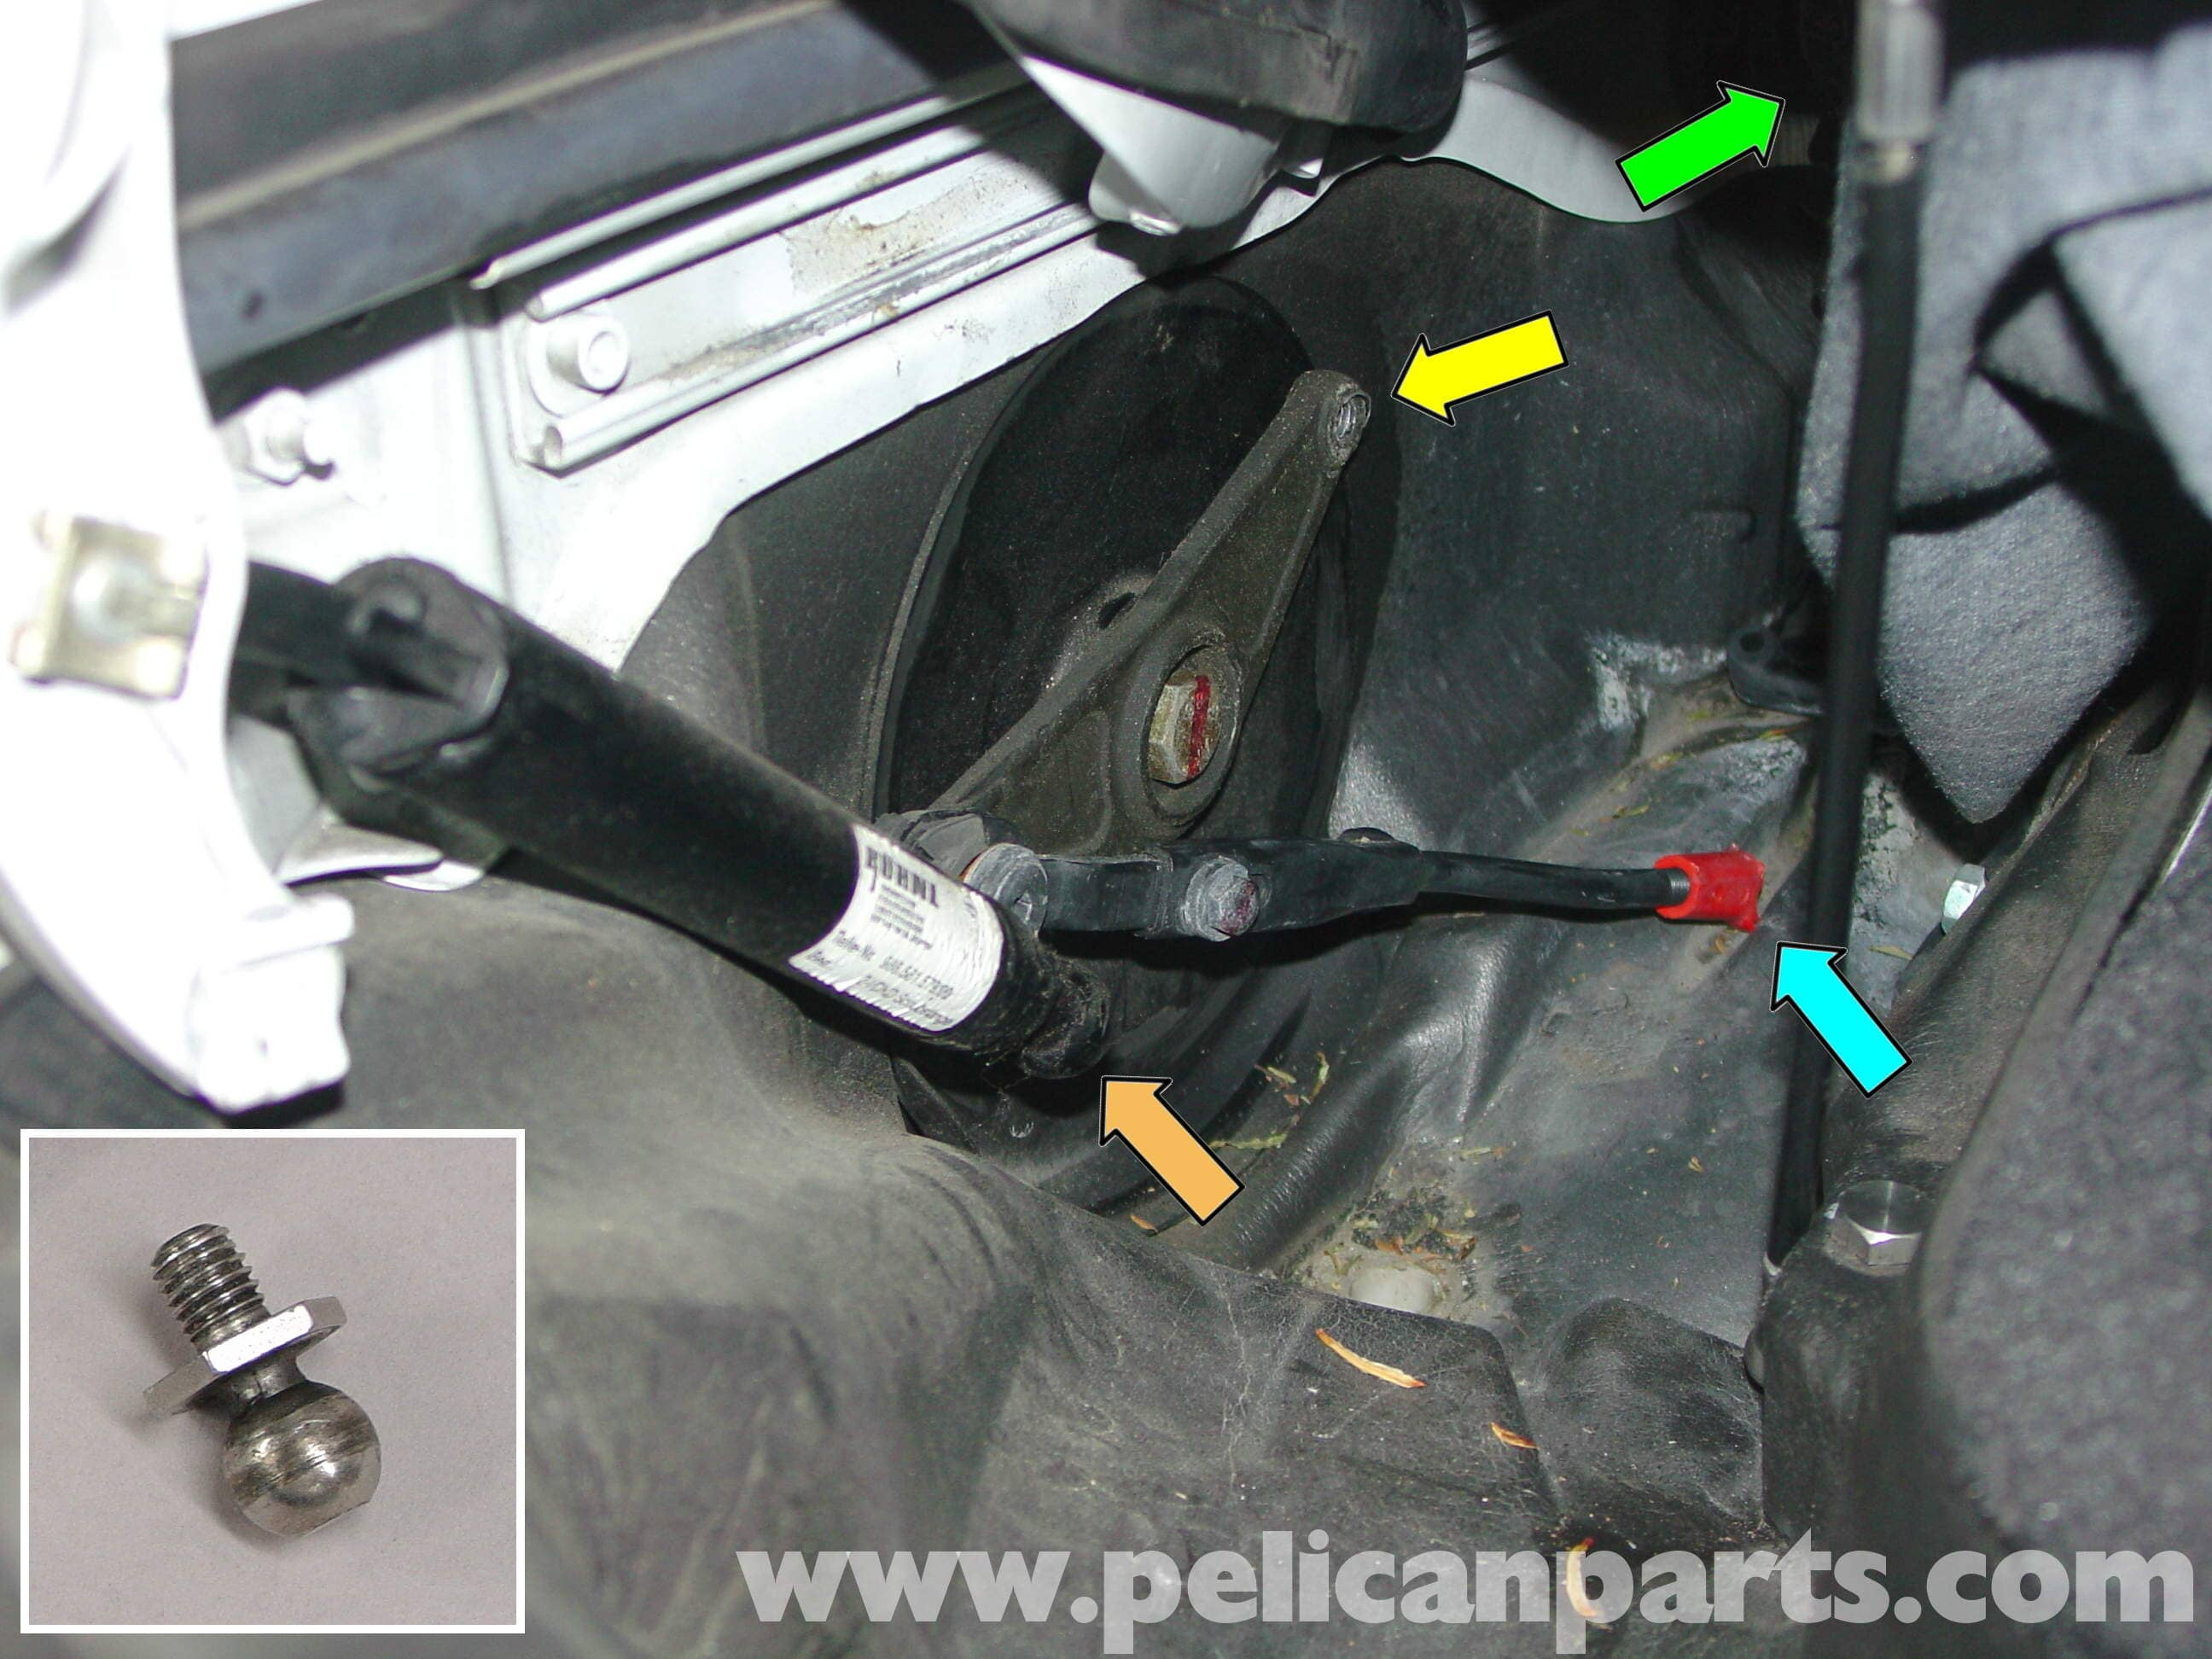 02 Cabrio Convertible Top Wiring Diagram Another Diagrams 1994 Gsr Wire Harness Schematic Porsche Boxster Repair 986 987 1997 08 Rh Pelicanparts Com Describe Motor Pump Operating